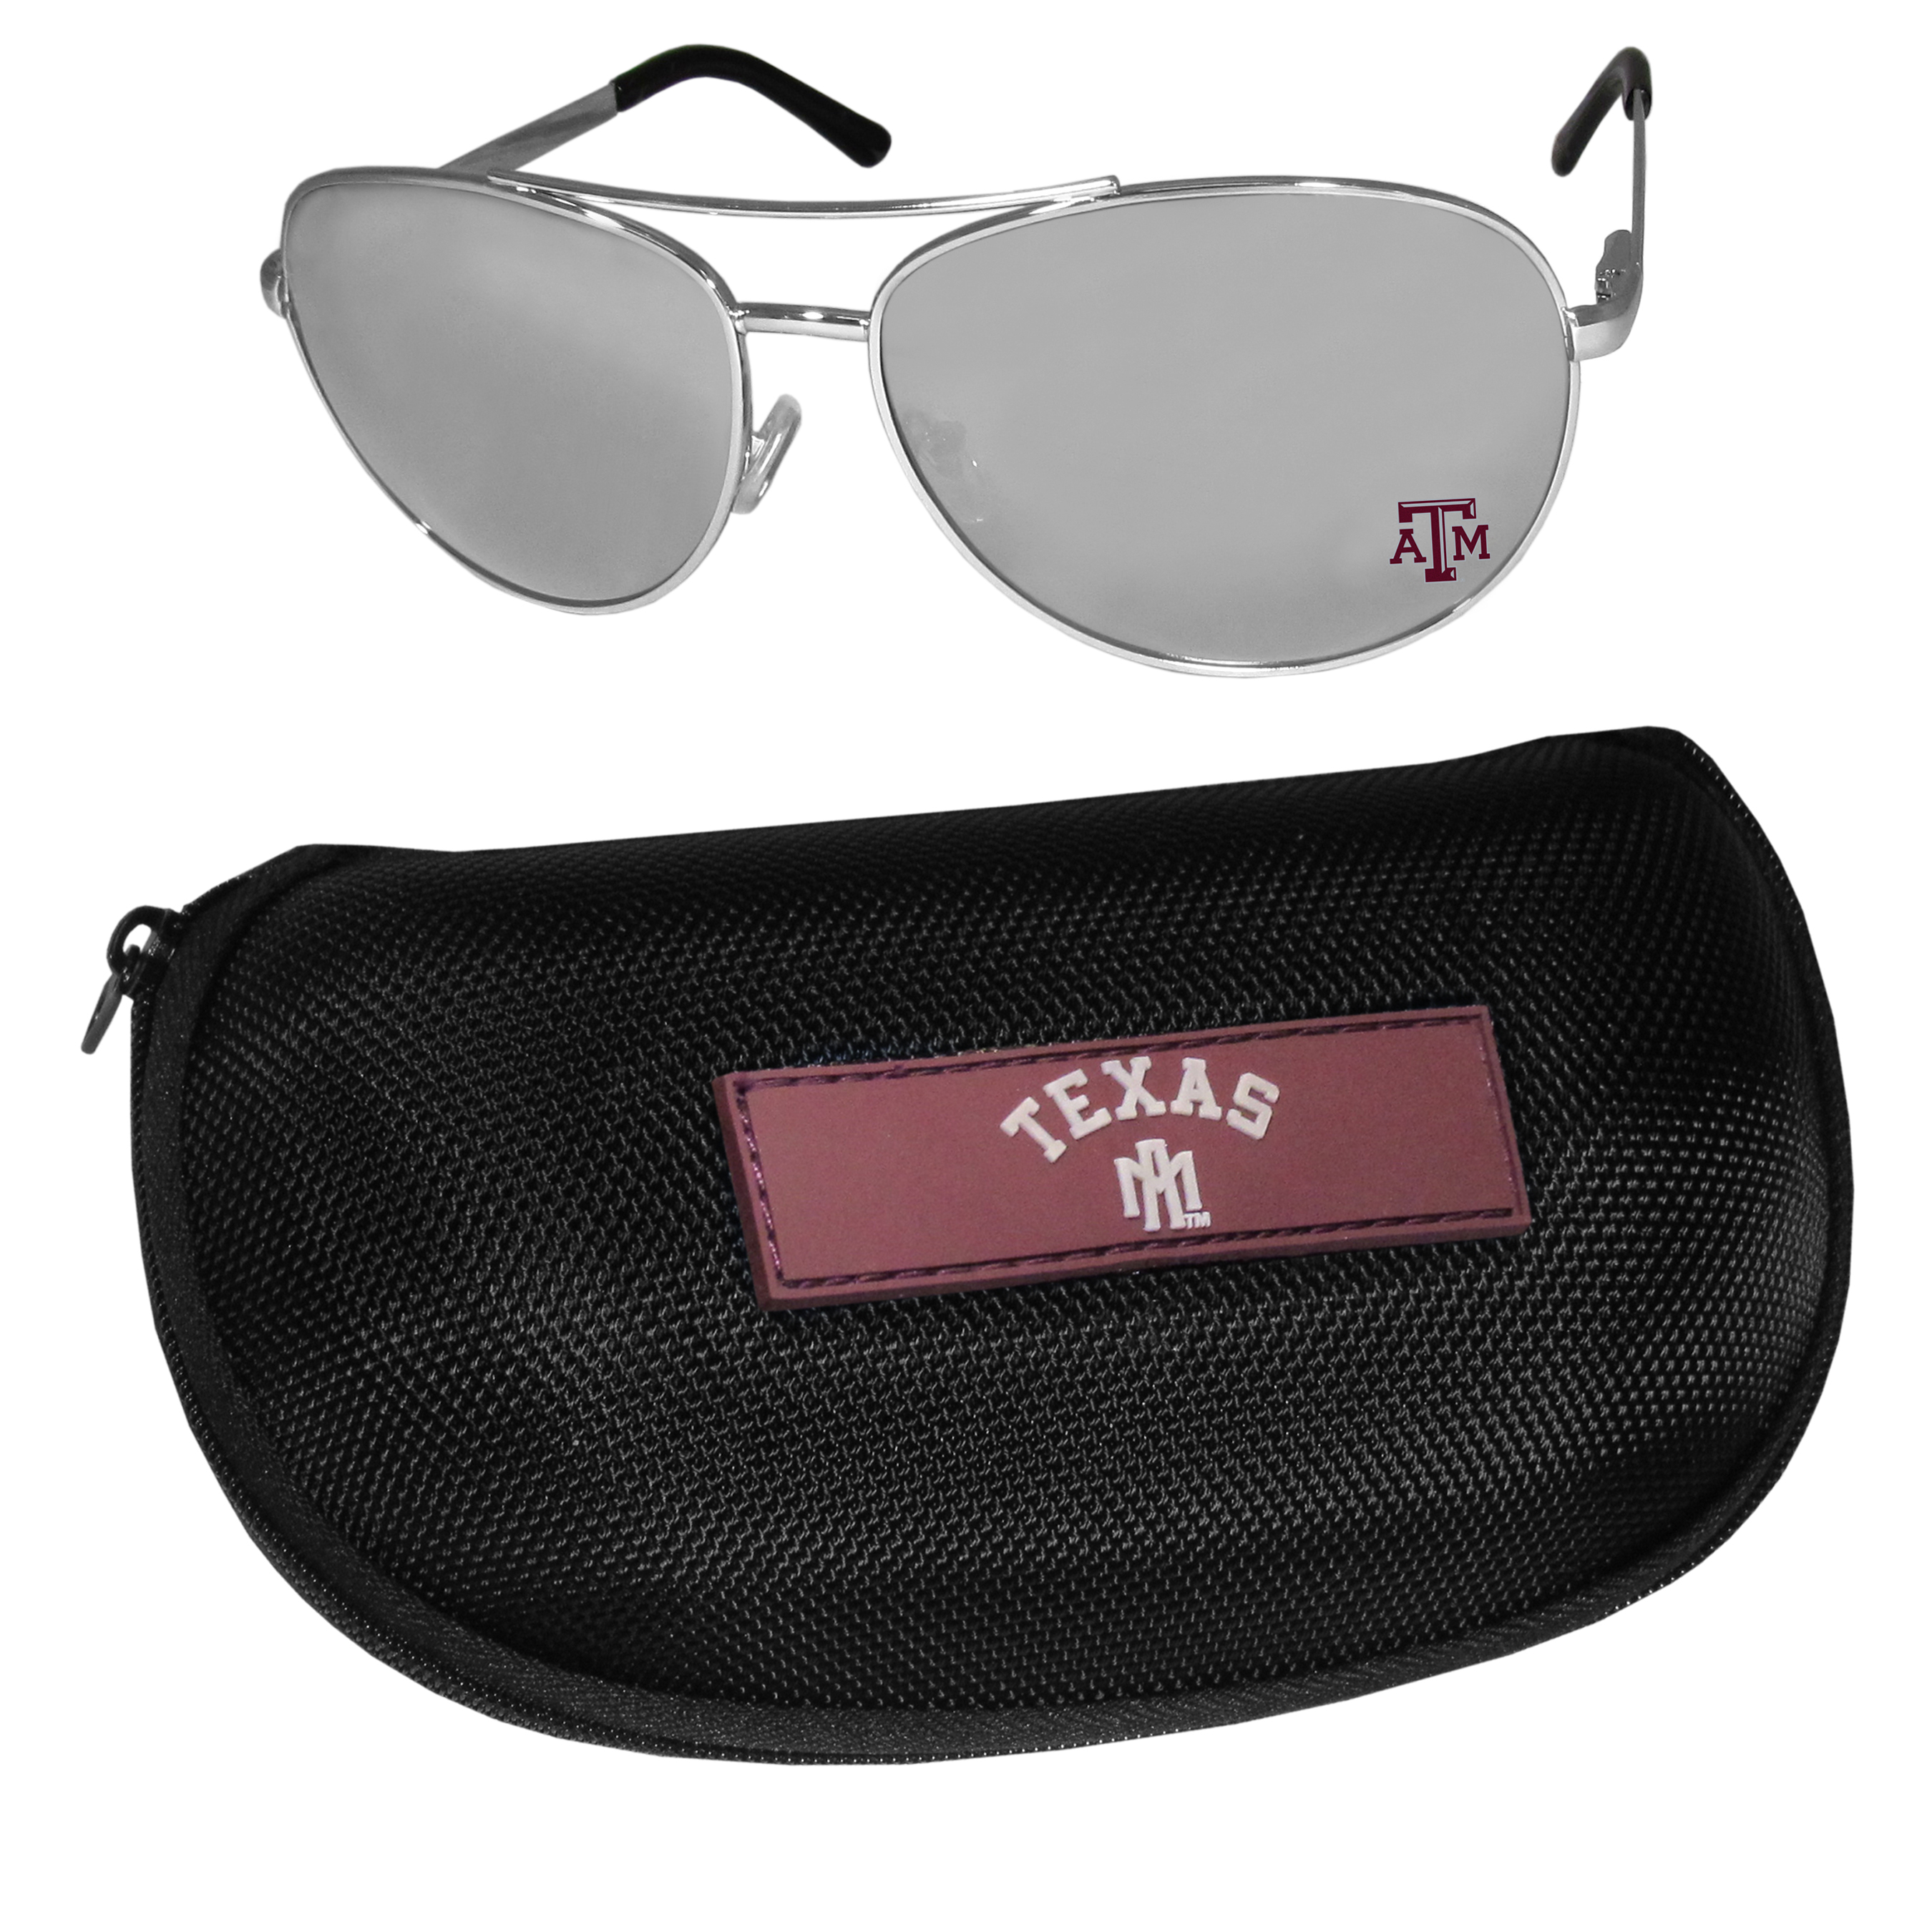 Texas A and M Aggies Aviator Sunglasses and Zippered Carrying Case - Aviator sunglasses are truly an iconic retro fashion statement that never goes out-of-style. Our Texas A & M Aggies  aviator sunglasses pair this classic look with your love of the game. The iridium coated lenses reduce glare while driving, boating, golfing and their 100% UVA/UVB rating provides you with the maximum UV protection for all your outdoor activities. A millennial favorite, these affordable designer frames are the perfect eyewear accessory for a sports fan that is looking for high-quality at an affordable price. The durable, flex hinged frames are tough enough for hiking and camping or if you prefer sun bathing by the pool or on the beach these shades will really stand the test of time. The sunglasses come with a hard shell zippered case which has a large team logo on the lid that will make even the most die-hard fan proud!